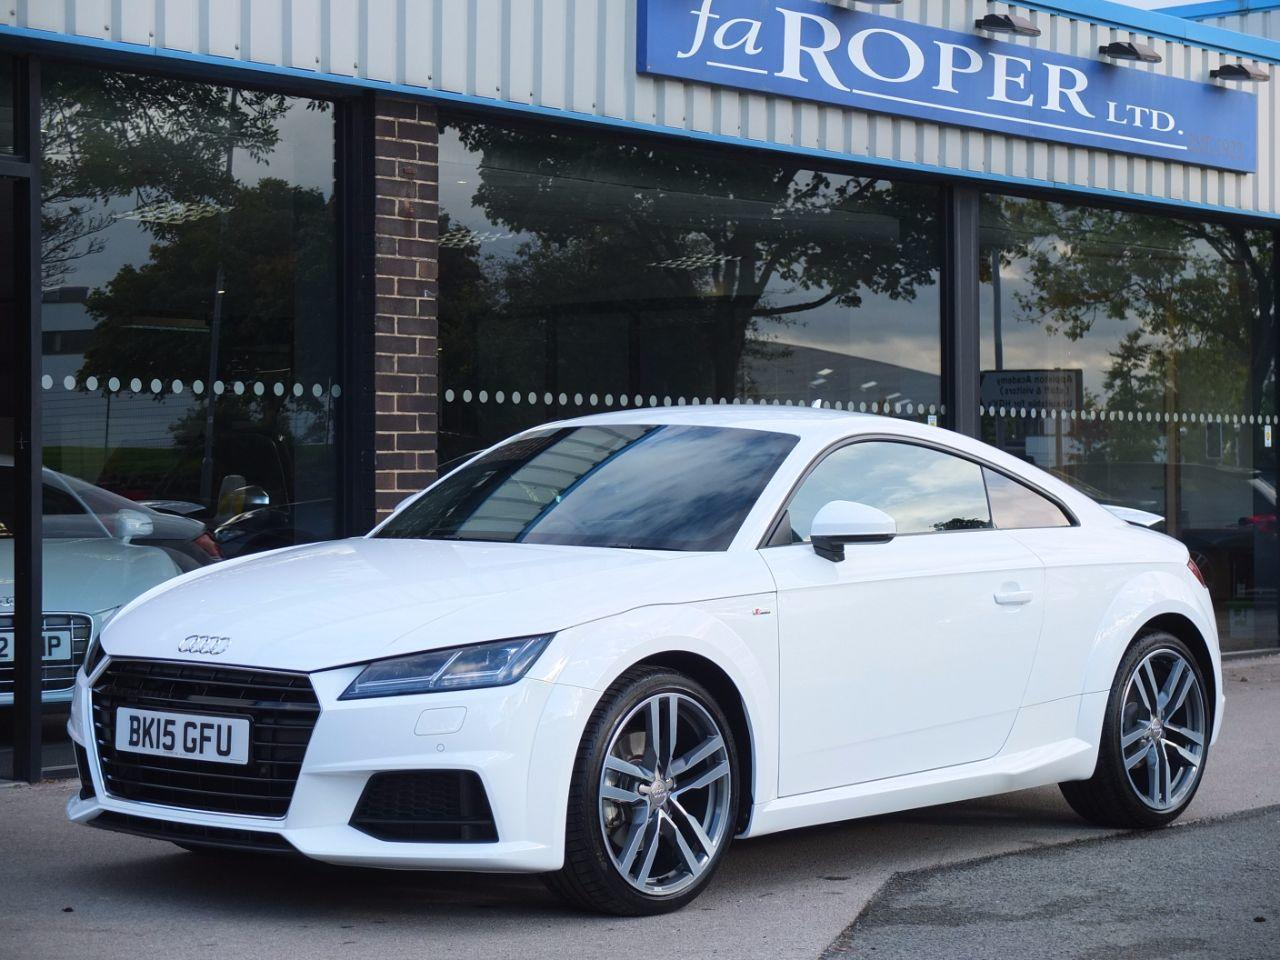 Audi TT Coupe 2.0 TDI S Line Ultra 190ps Coupe Diesel Ibis WhiteAudi TT Coupe 2.0 TDI S Line Ultra 190ps Coupe Diesel Ibis White at fa Roper Ltd Bradford